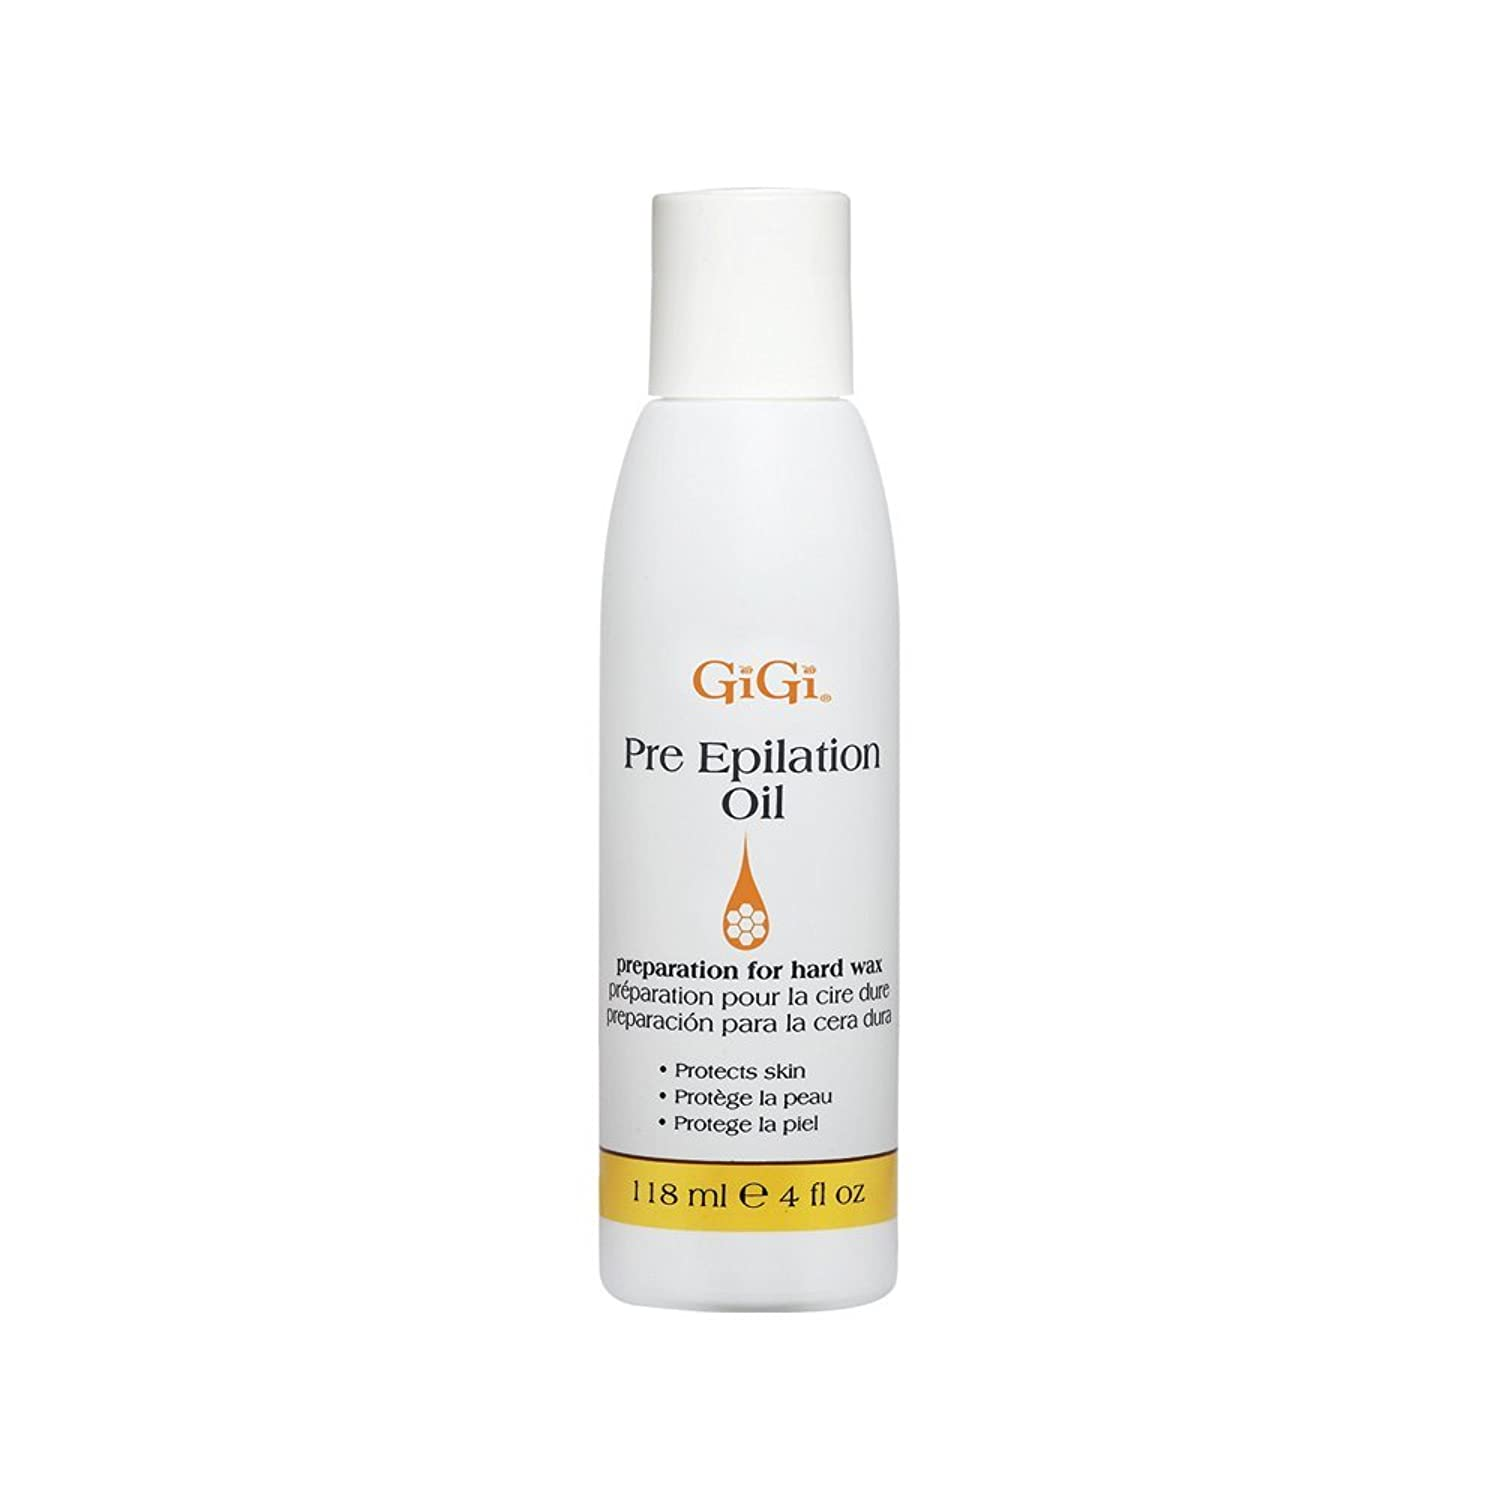 GiGi Pre Epilation Oil - Allows For Easier & More Effective Waxing While Protecting & Conditioning Skin - Preparation for Hard Wax - 118ml